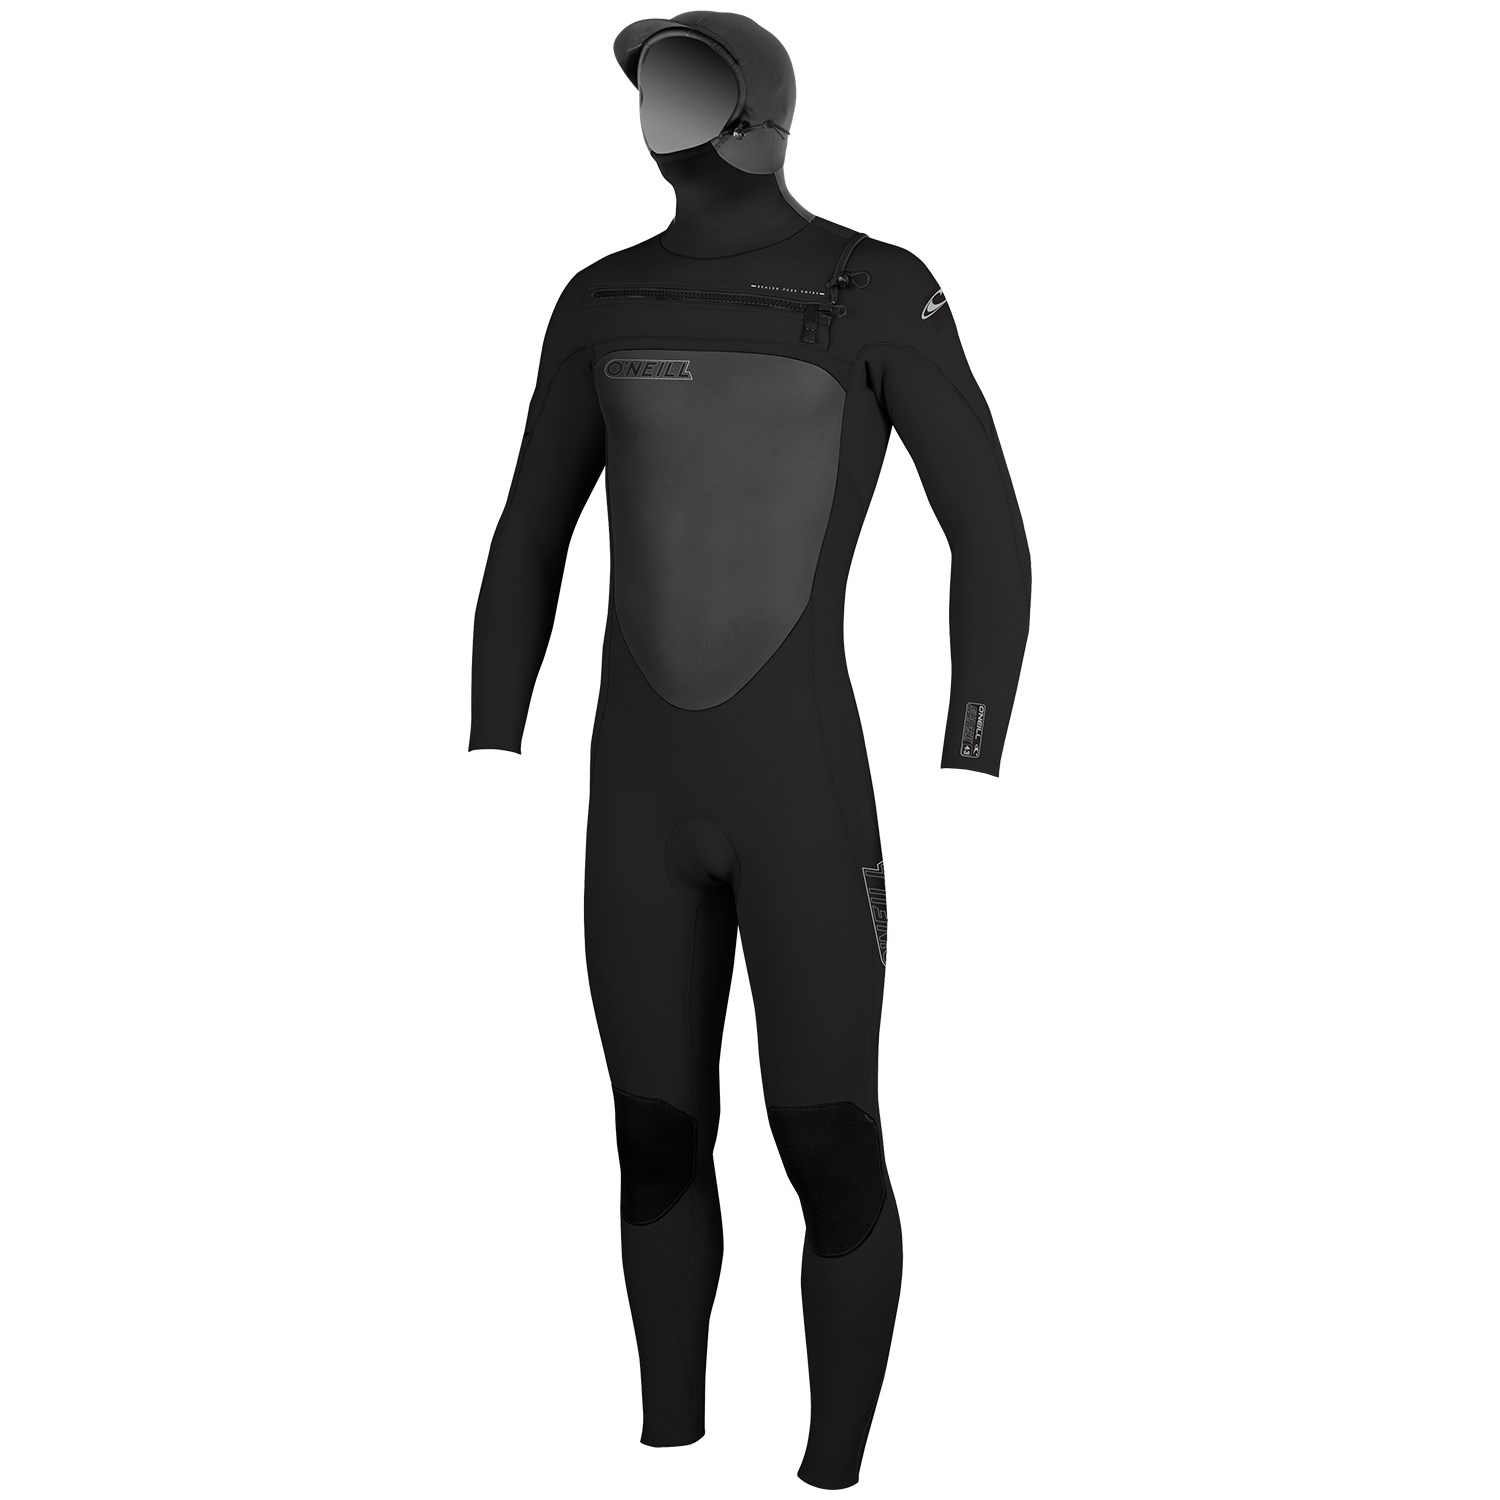 o neill superfreak 5 4 chest zip hooded wetsuit black black black front o'neill wetsuit size chart,Oneill Womens Clothing Size Chart